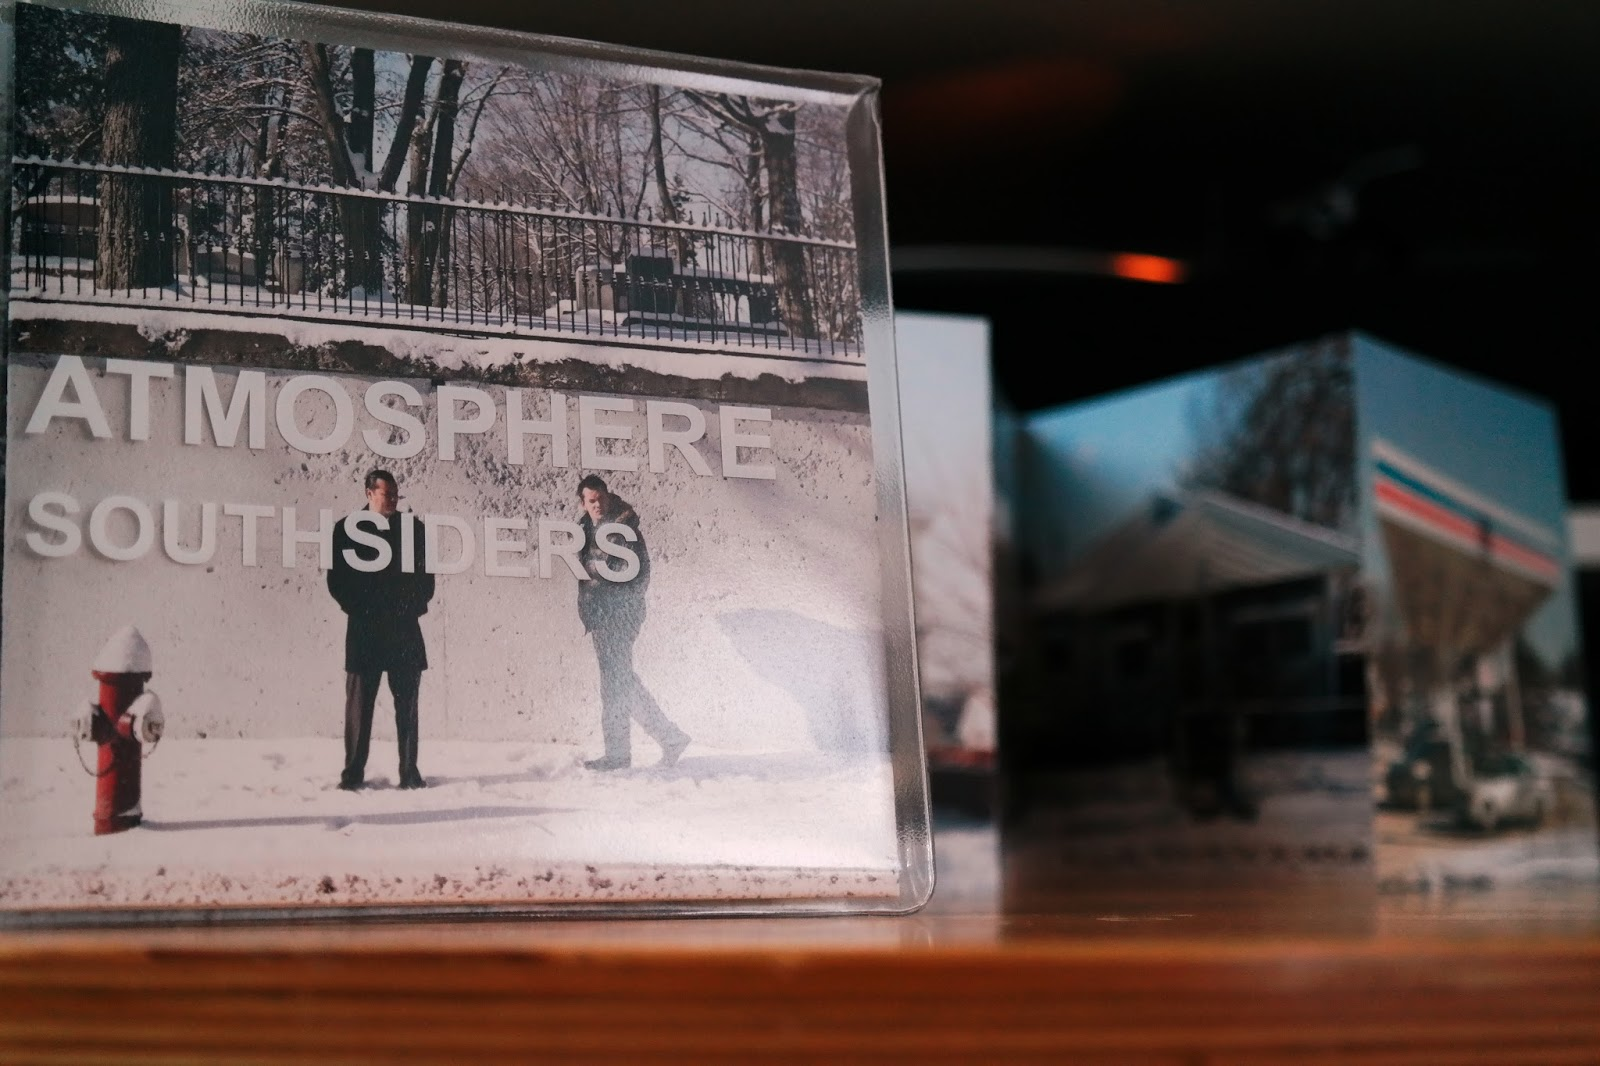 Atmosphere - Southsiders | Album Review - Atomlabor Wuppertal Blog